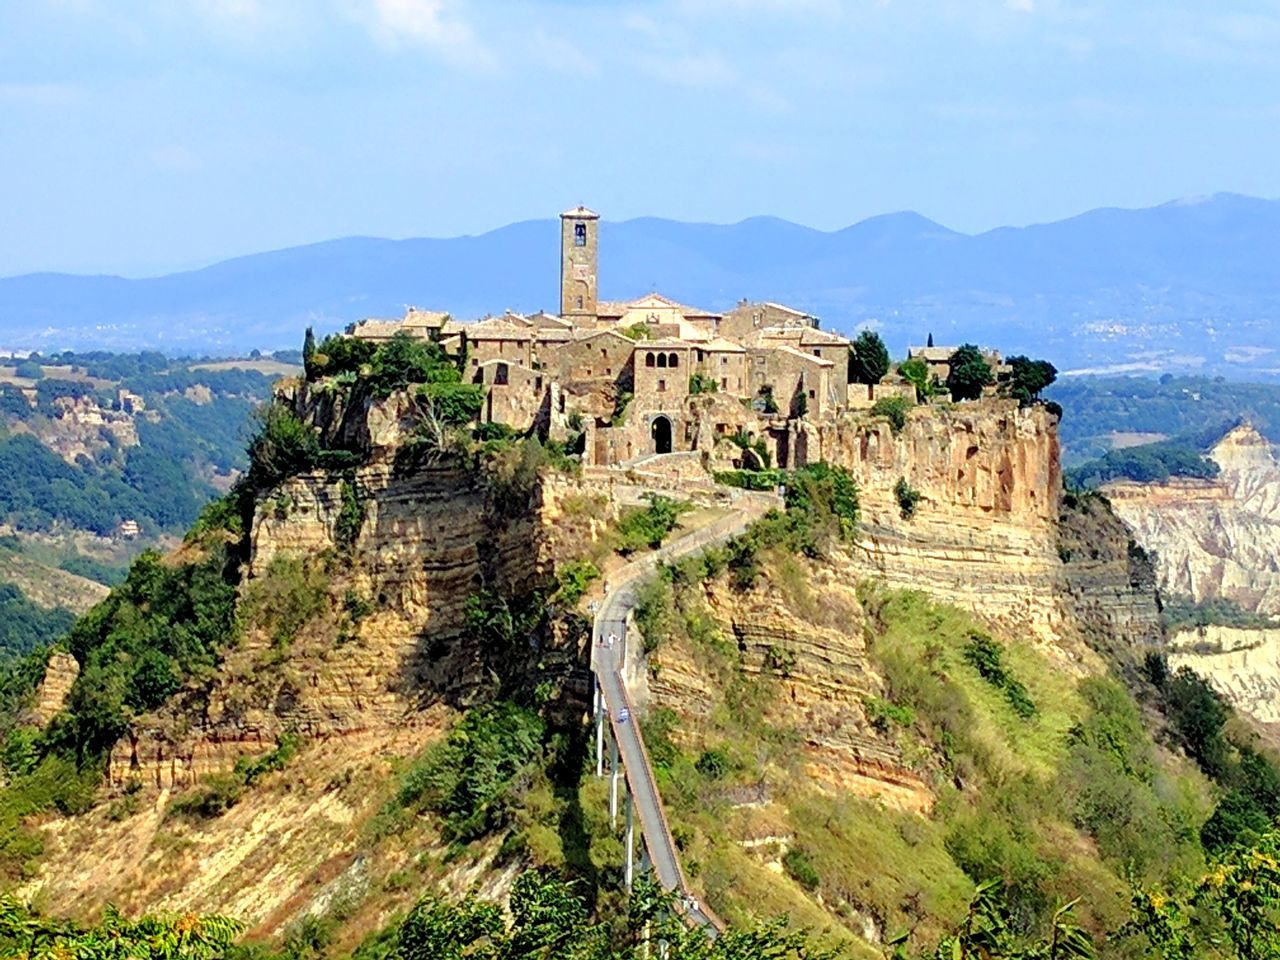 Architecture History Travel Destinations City Tourism Castle Outdoors Mountain No People Civita Civita Di Bagnoregio Citta Turismo Viaggi Viaggiare TripTurism Travel Travelers Travel Photography Travels Italy Italia Lazio Italy🇮🇹 Adapted To The City EyeEmNewHere